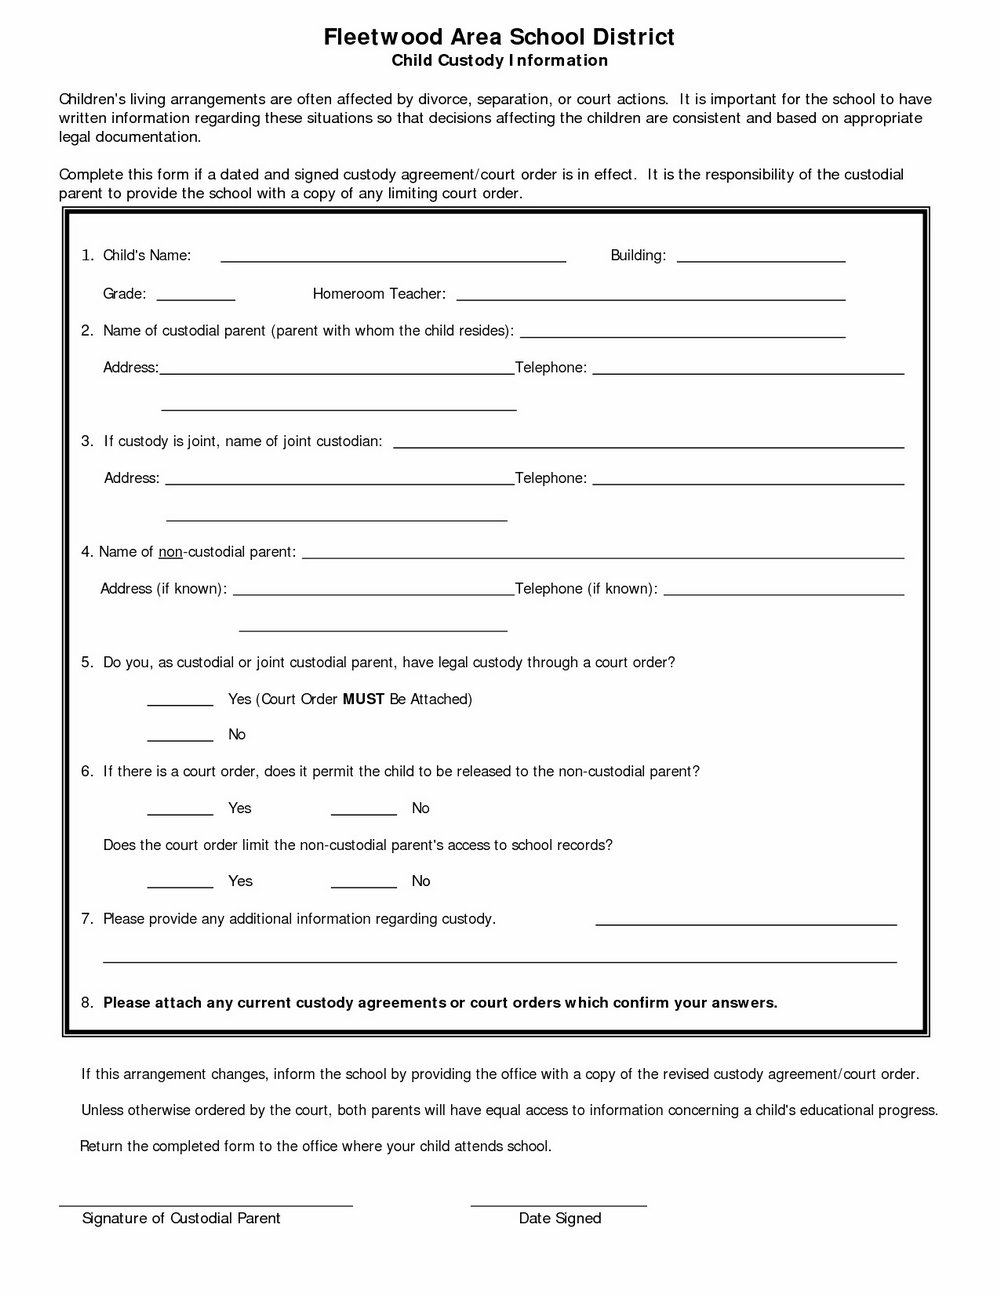 50 50 Custody Agreement Template